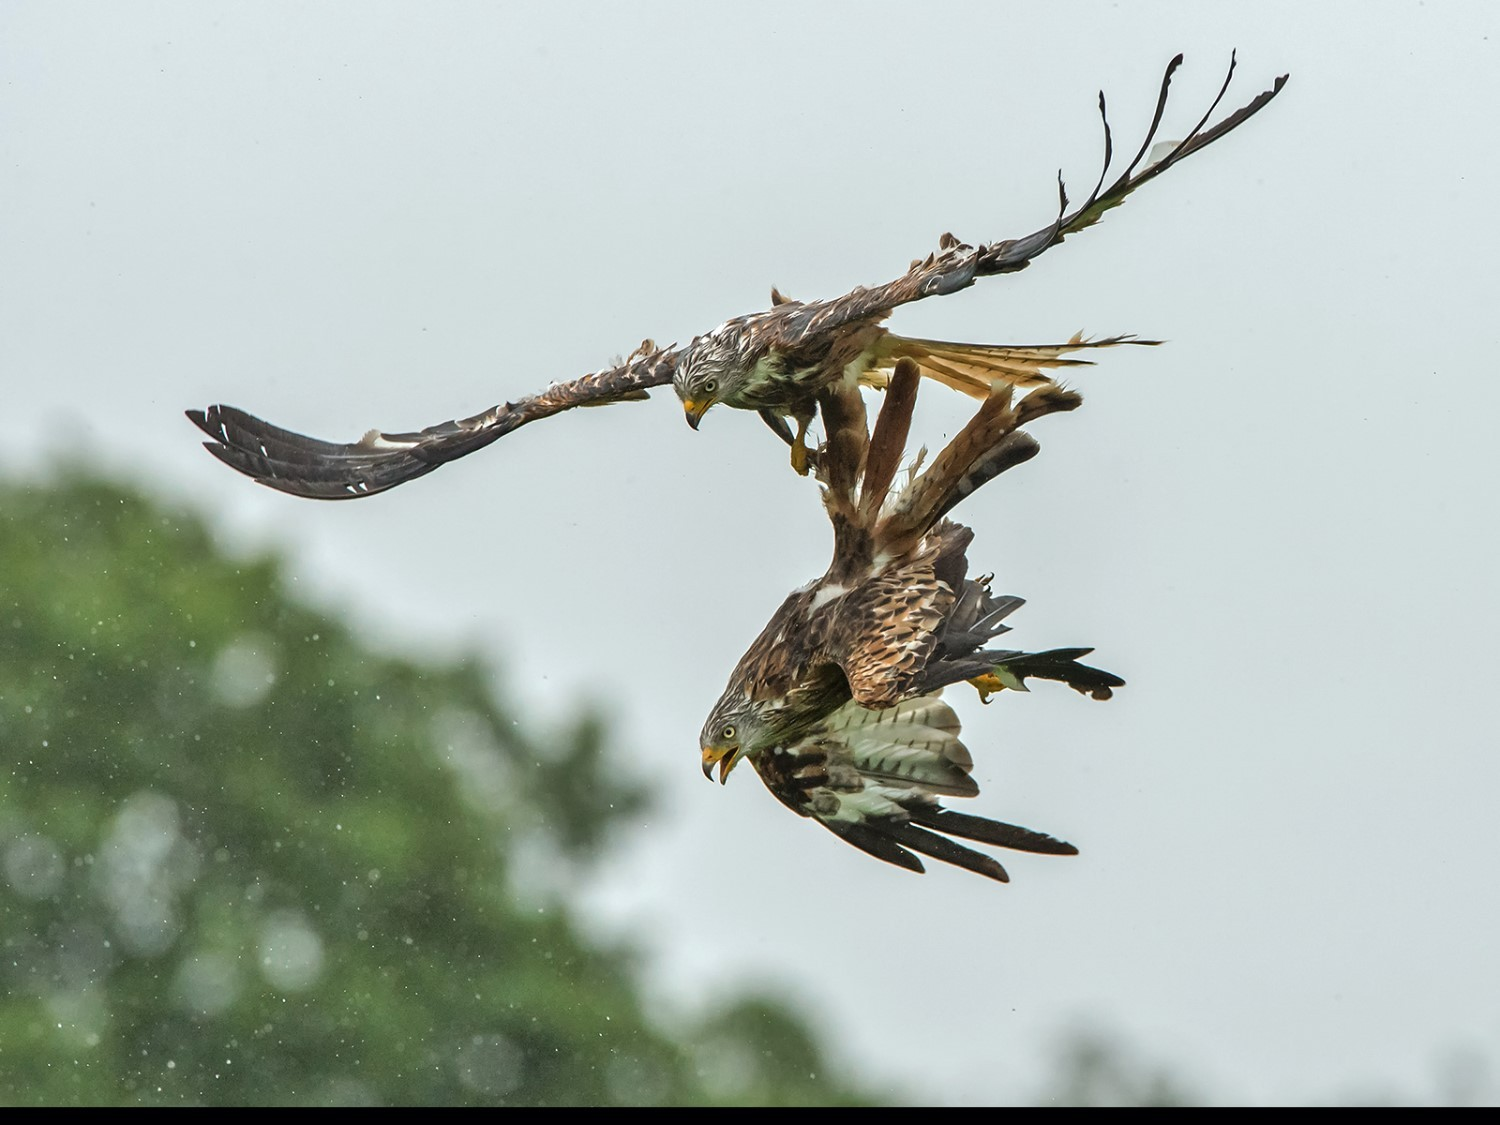 Red Kite (milvus milvus) fight in the rain